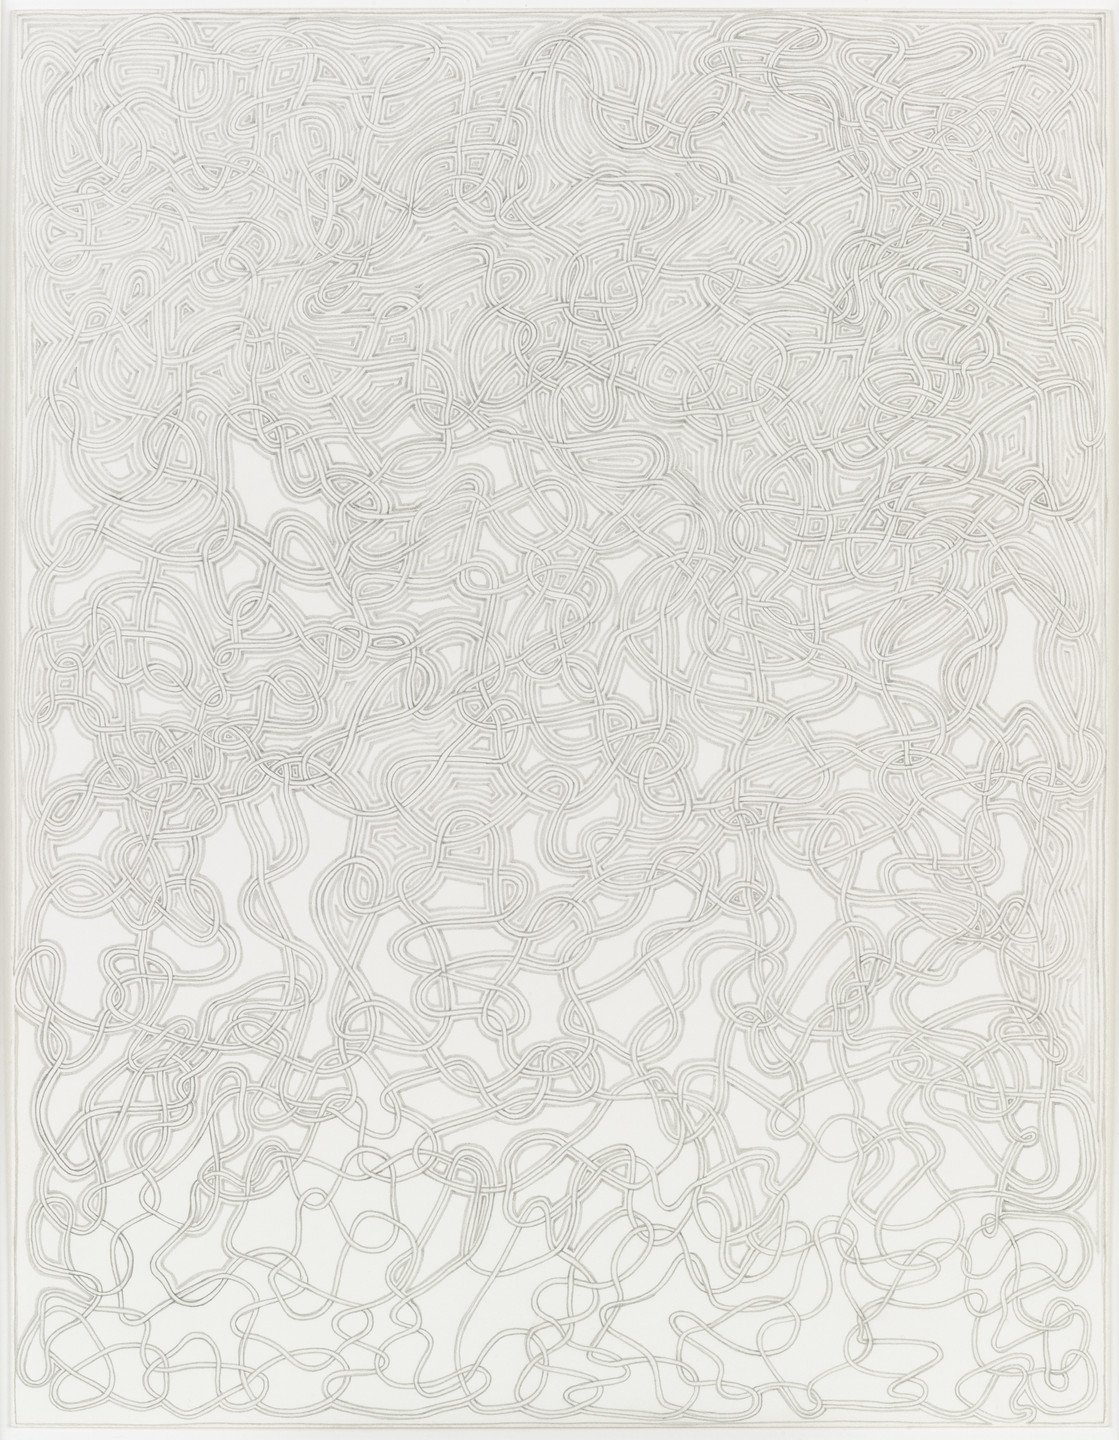 James Siena. Partially Coffered Unknot. (2003)